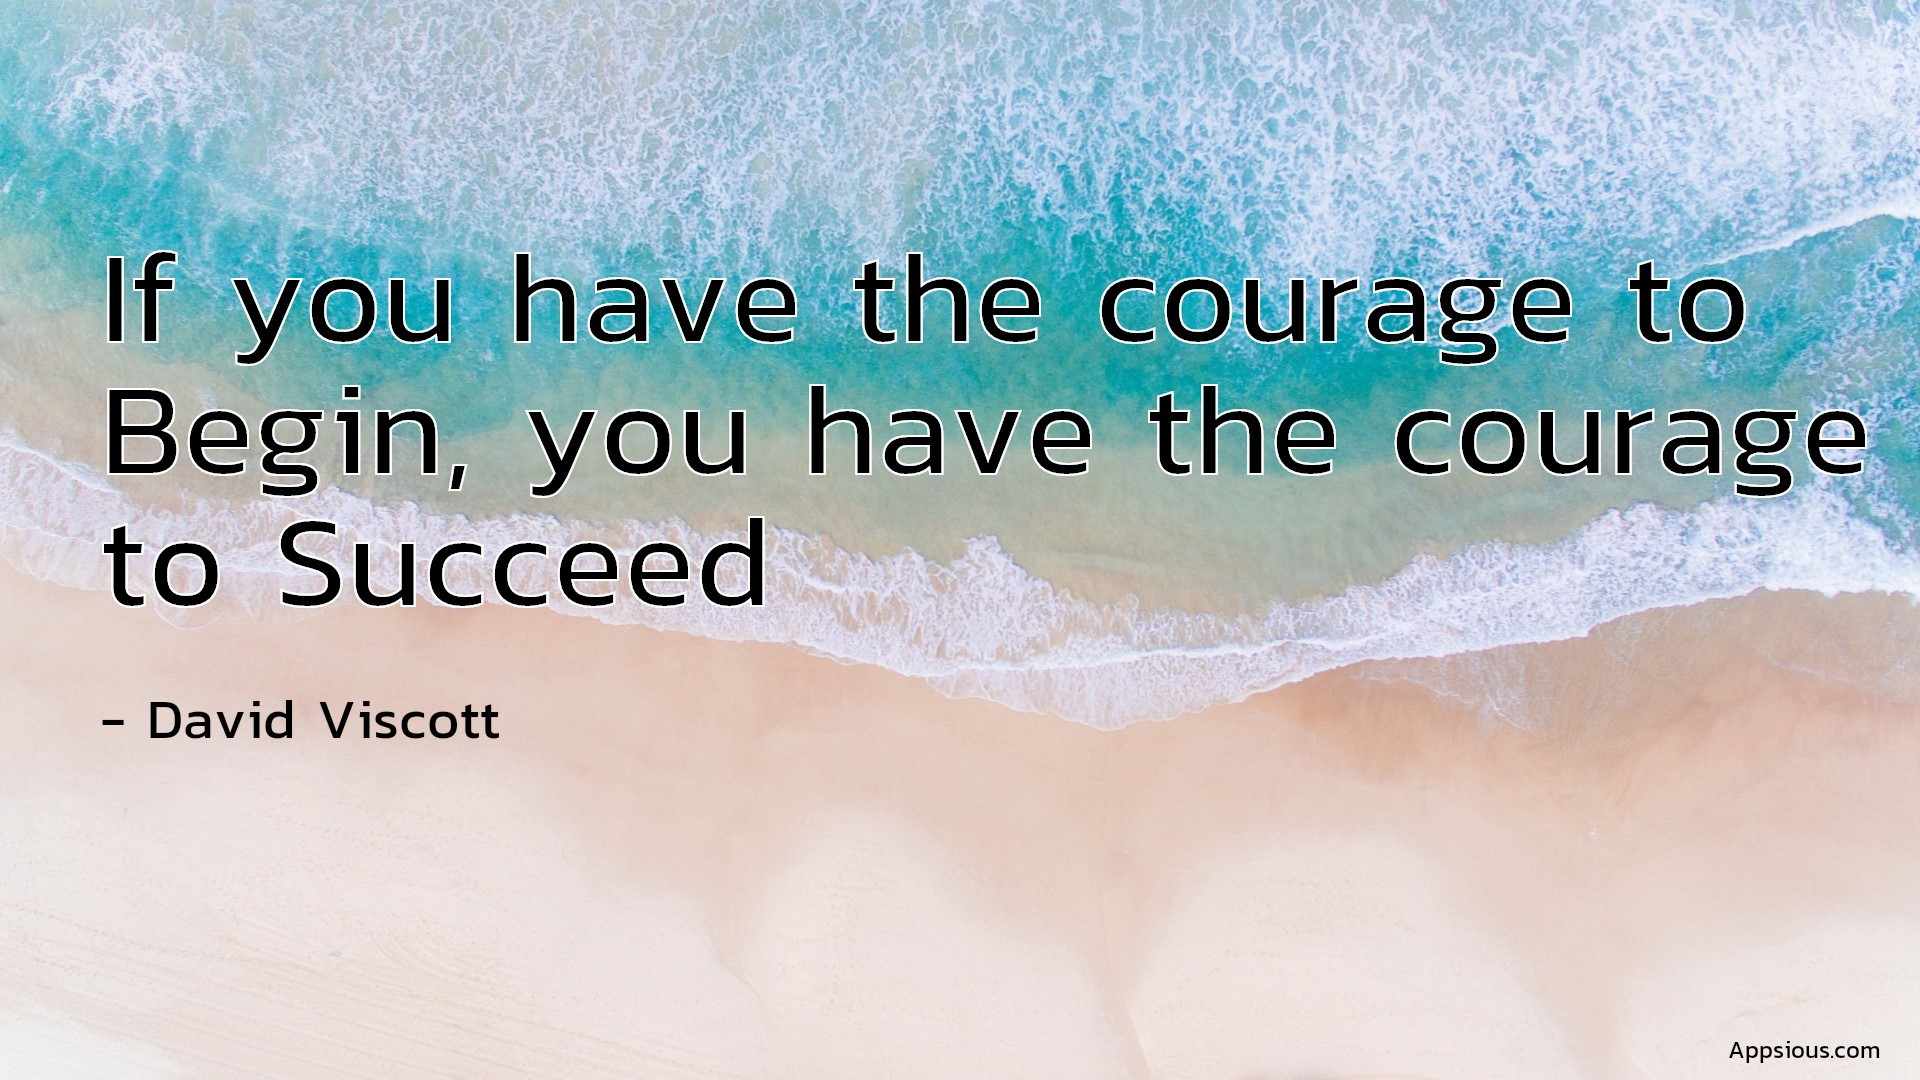 If you have the courage to Begin, you have the courage to Succeed